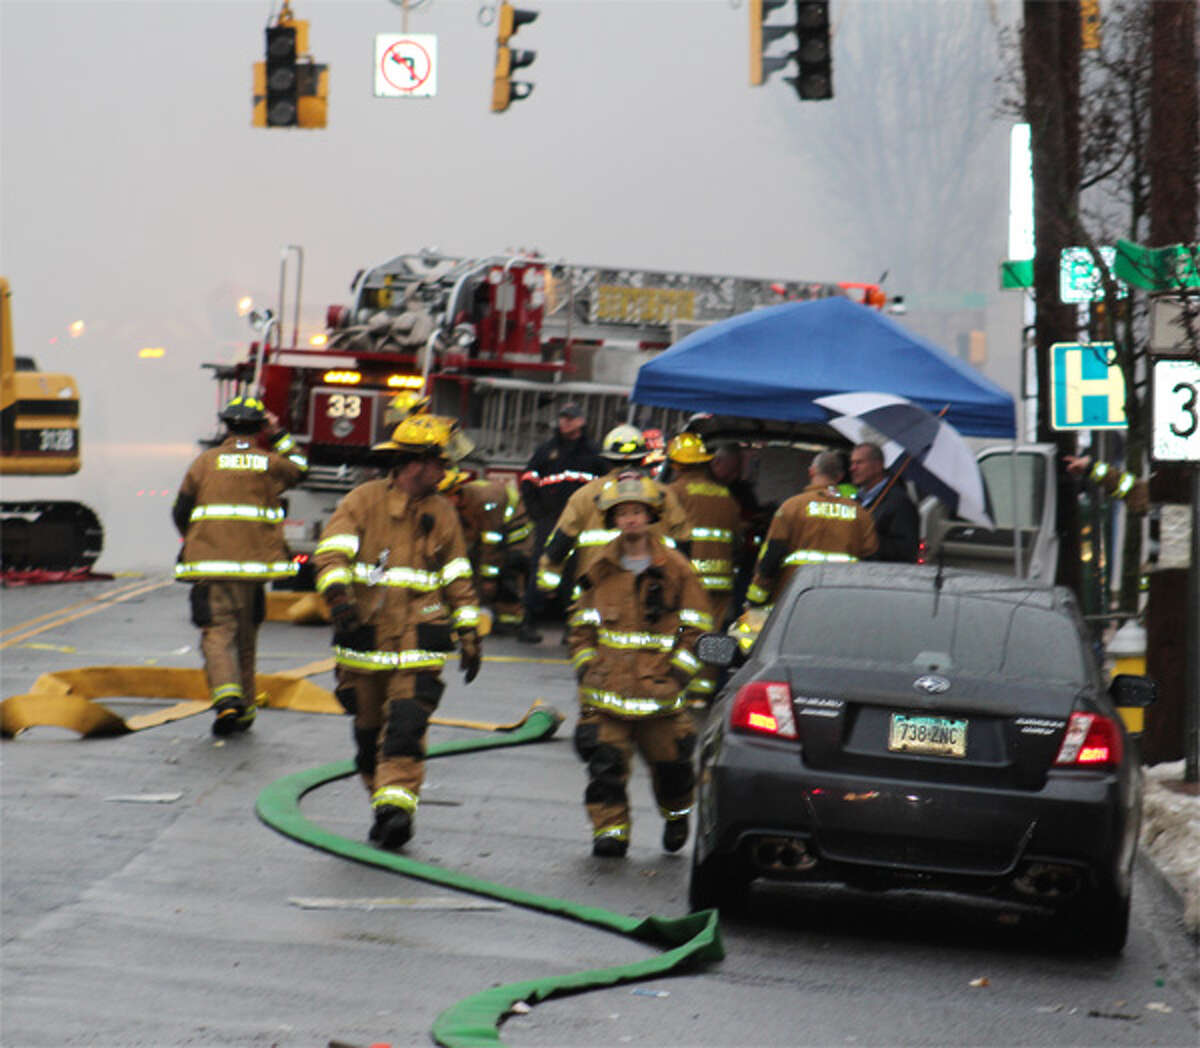 Firefighters move around the scene on Howe Avenue, with Mayor Mark Lauretti visible standing behind the car, holding an umbrella and talking to a fire official.